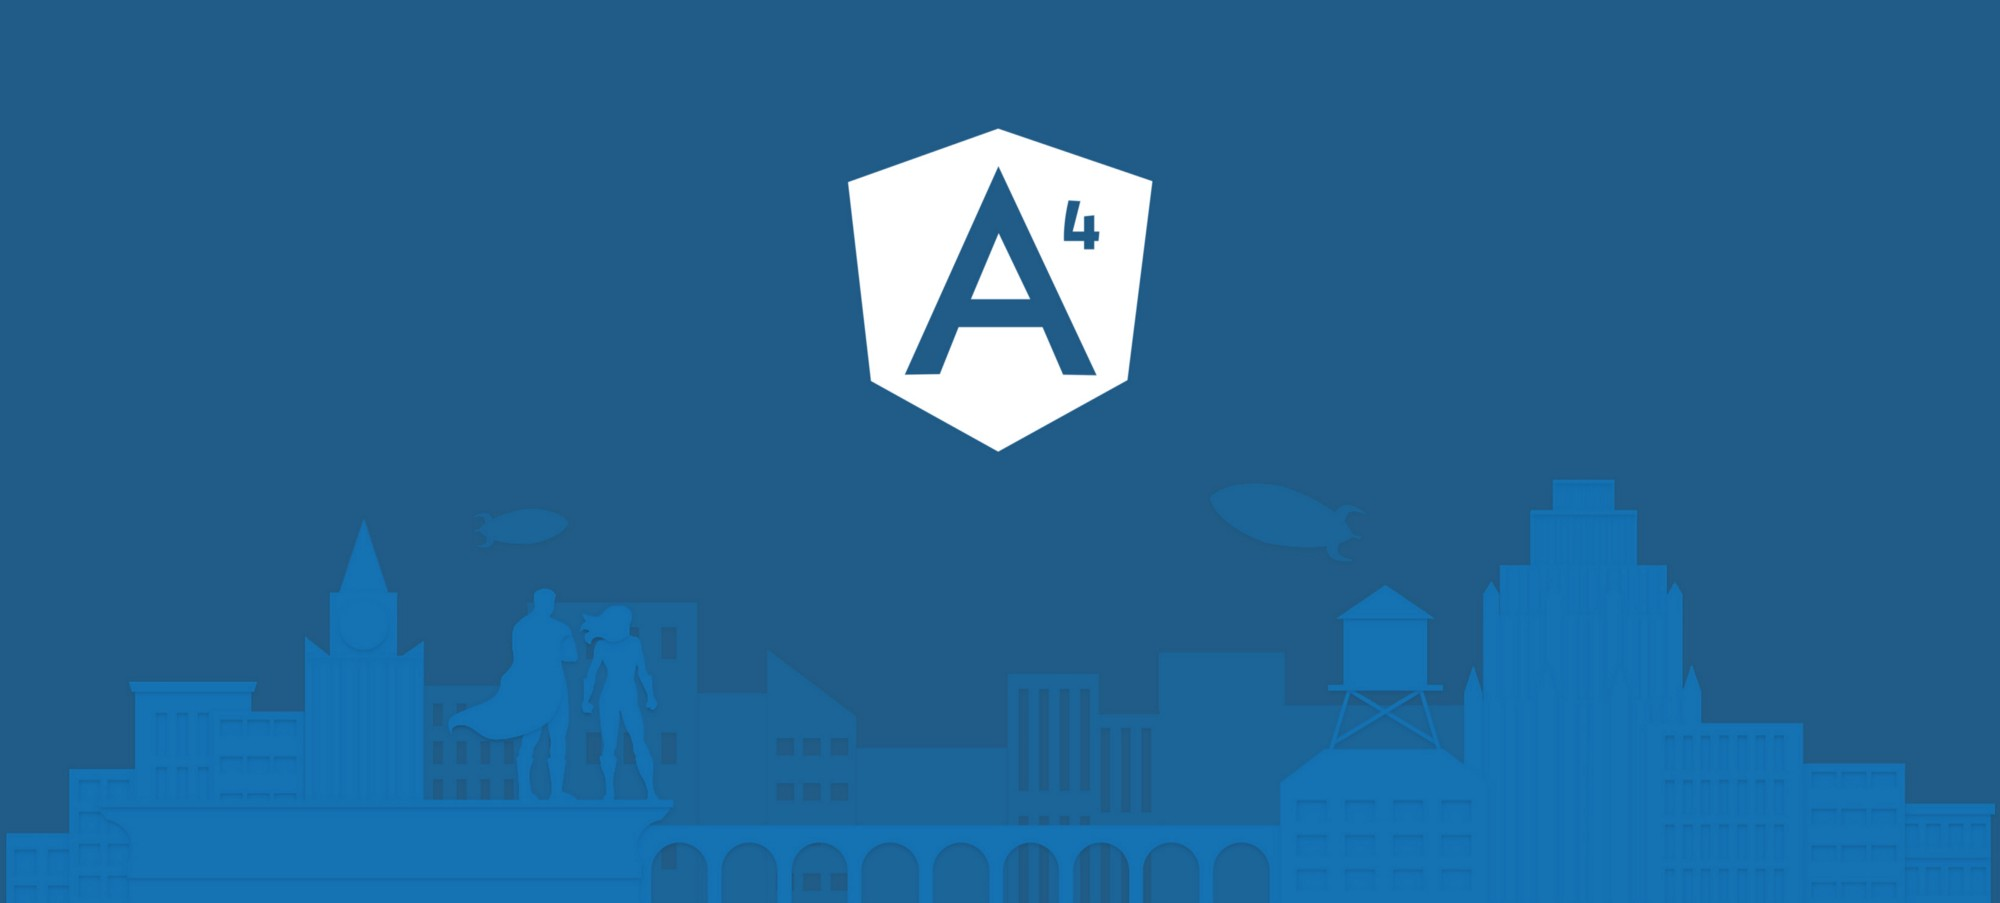 A look at what's new in Angular 4, how it's different than Angular 2 and if you sould upgrade your Angular App to 4.